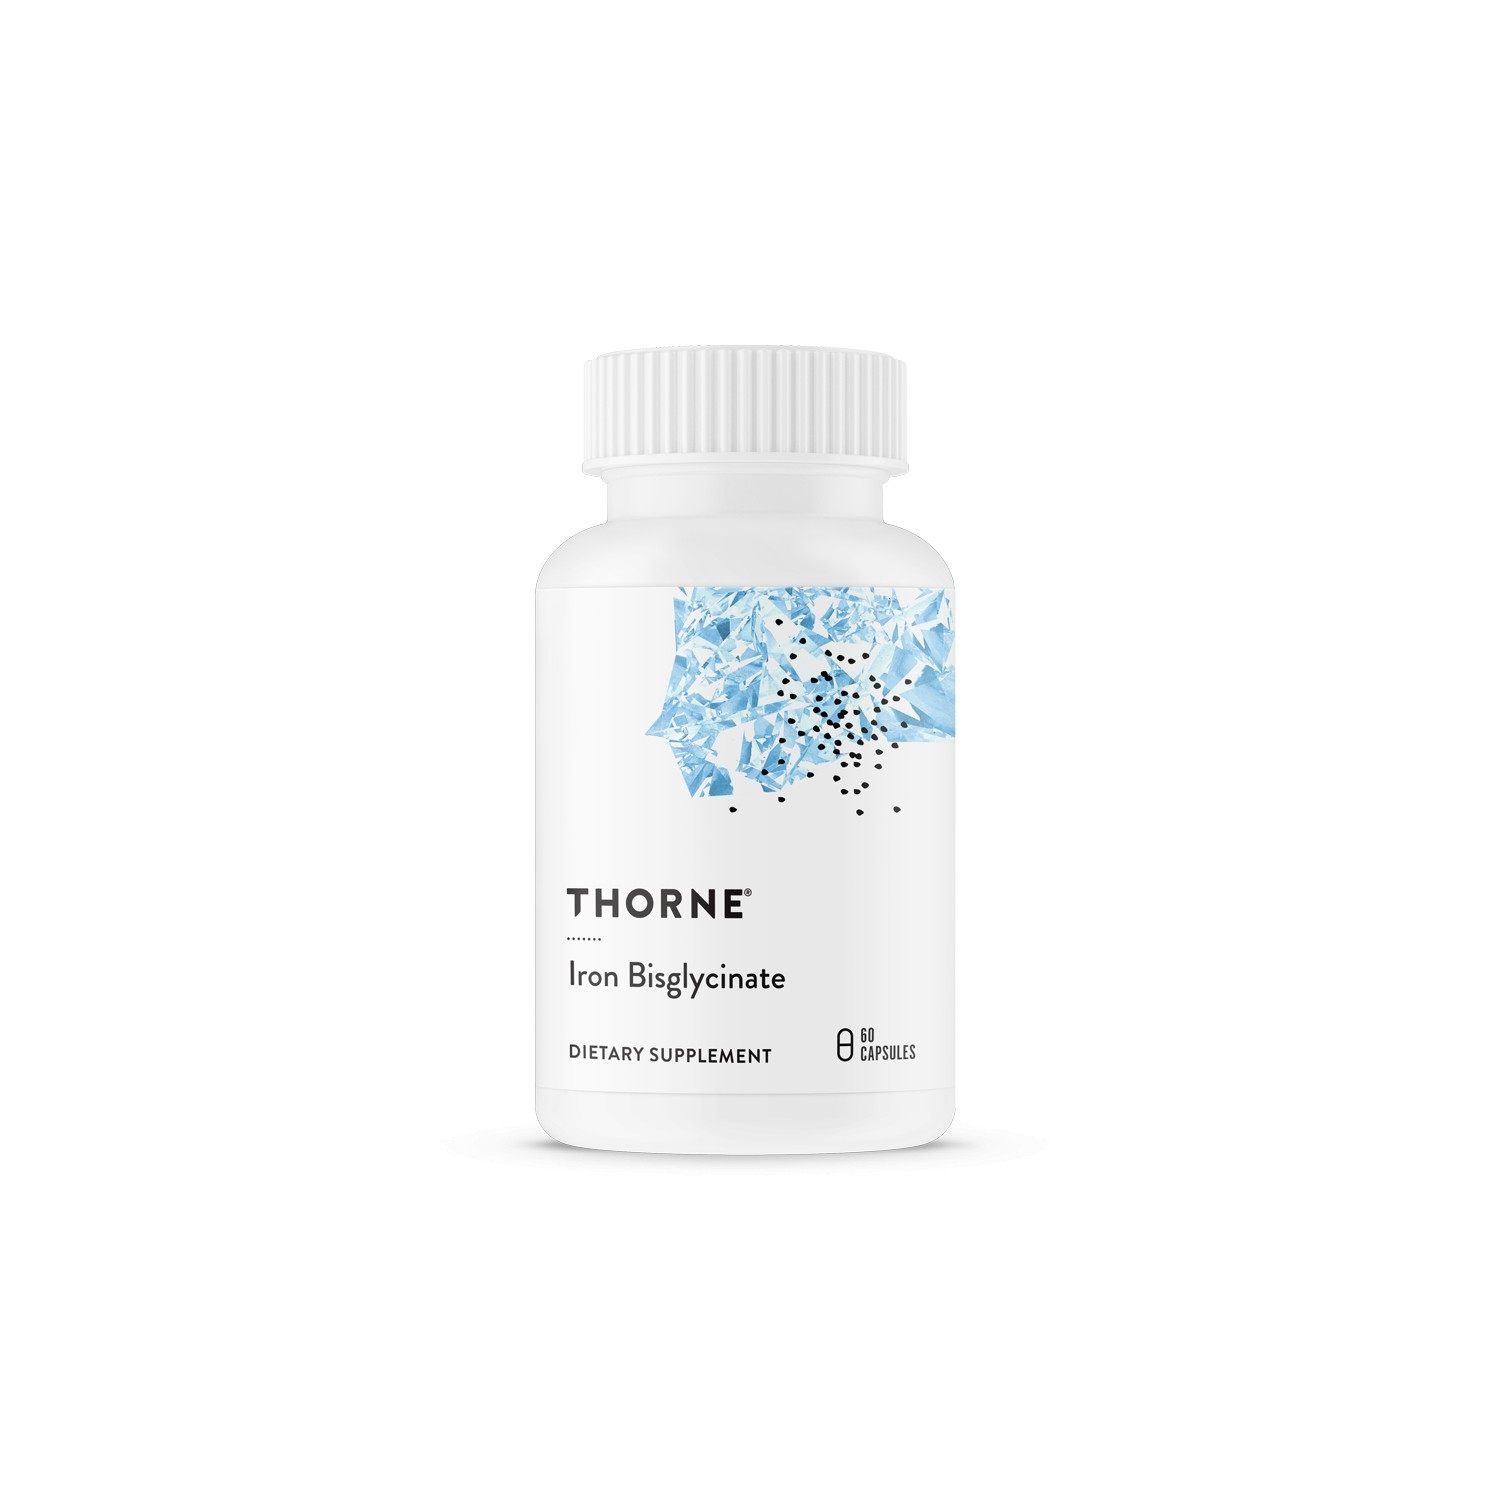 THORNE RESEARCH - Iron Bisglycinate 25 mg - 60 caps